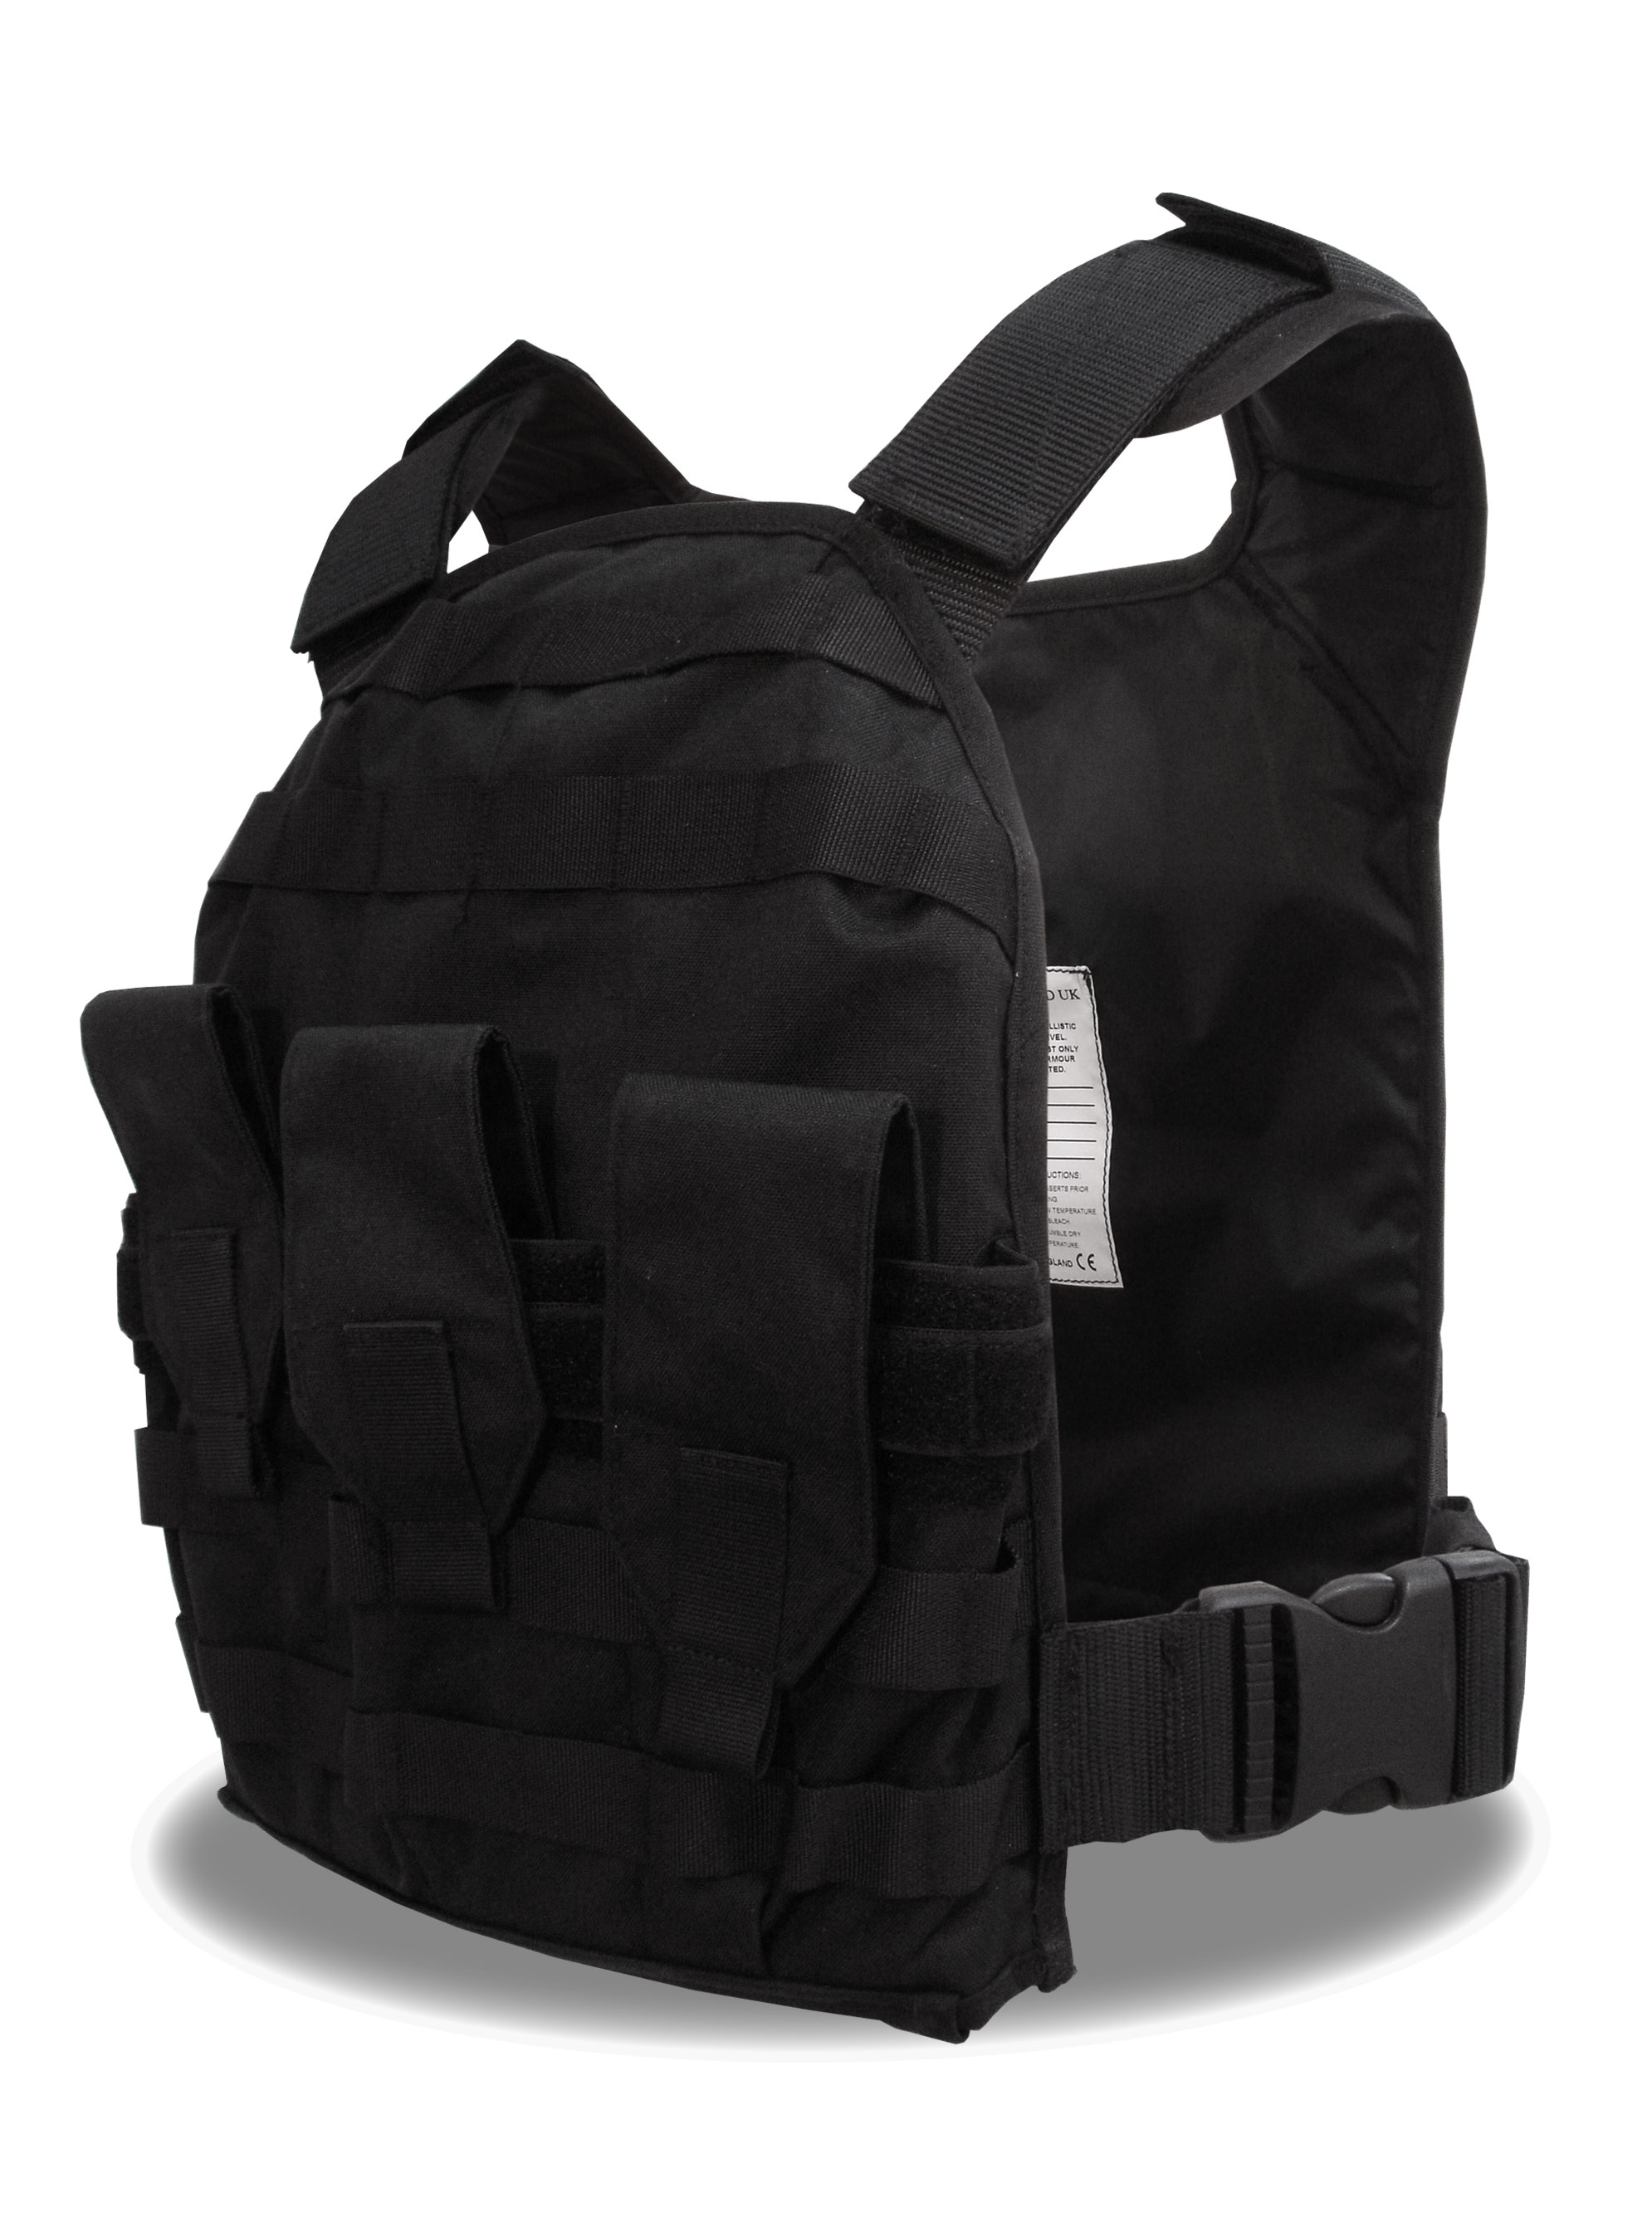 Tactical Plate Carriers